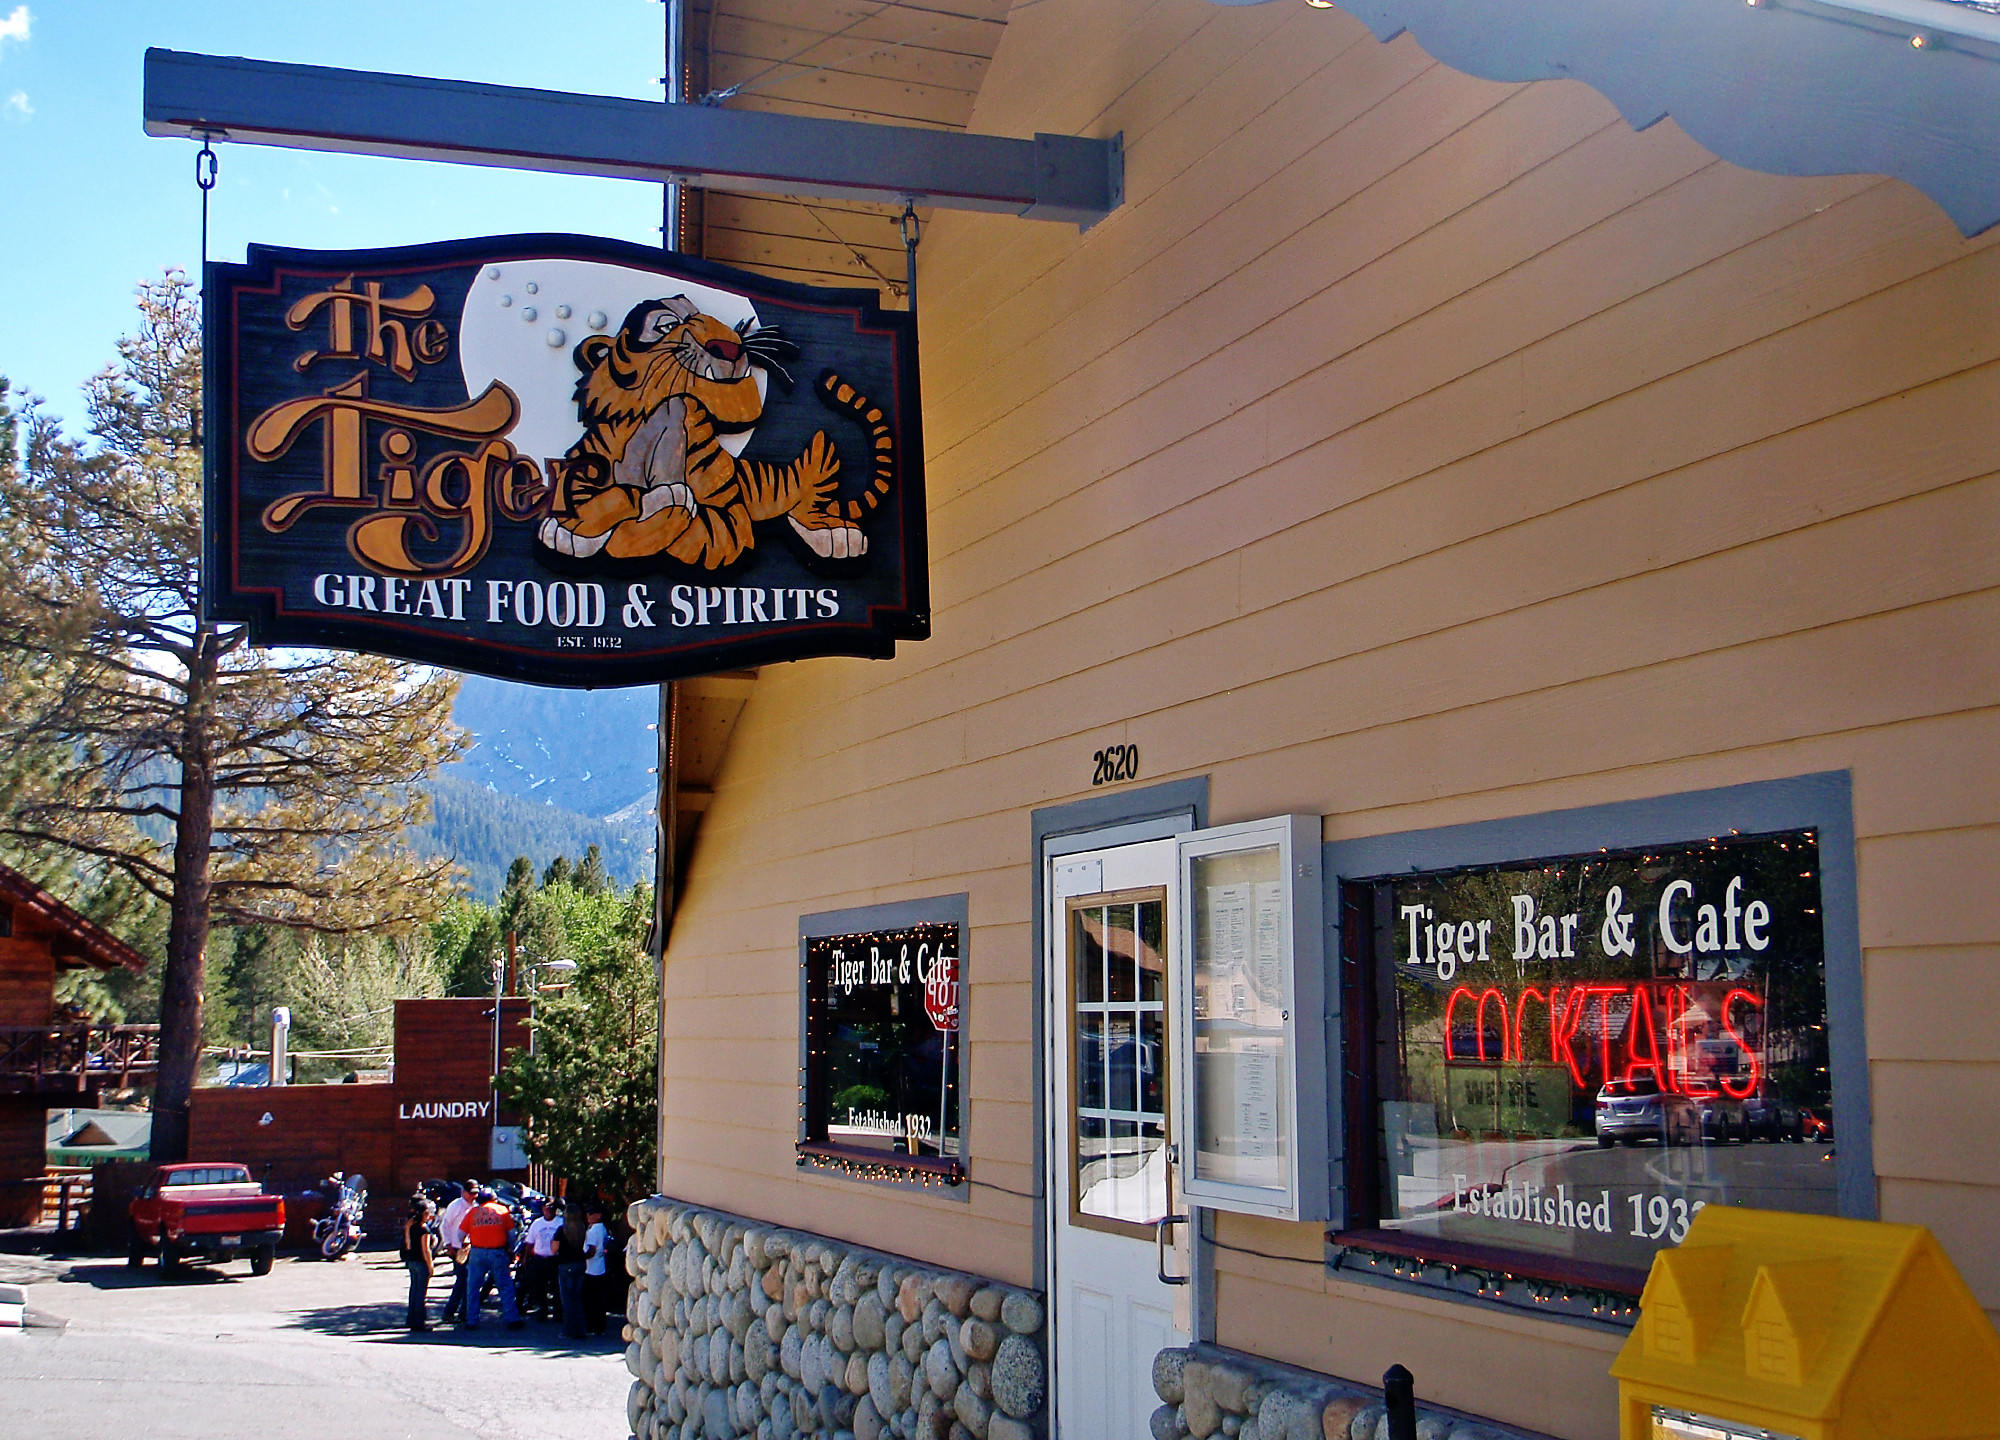 The Tiger Bar & Cafe